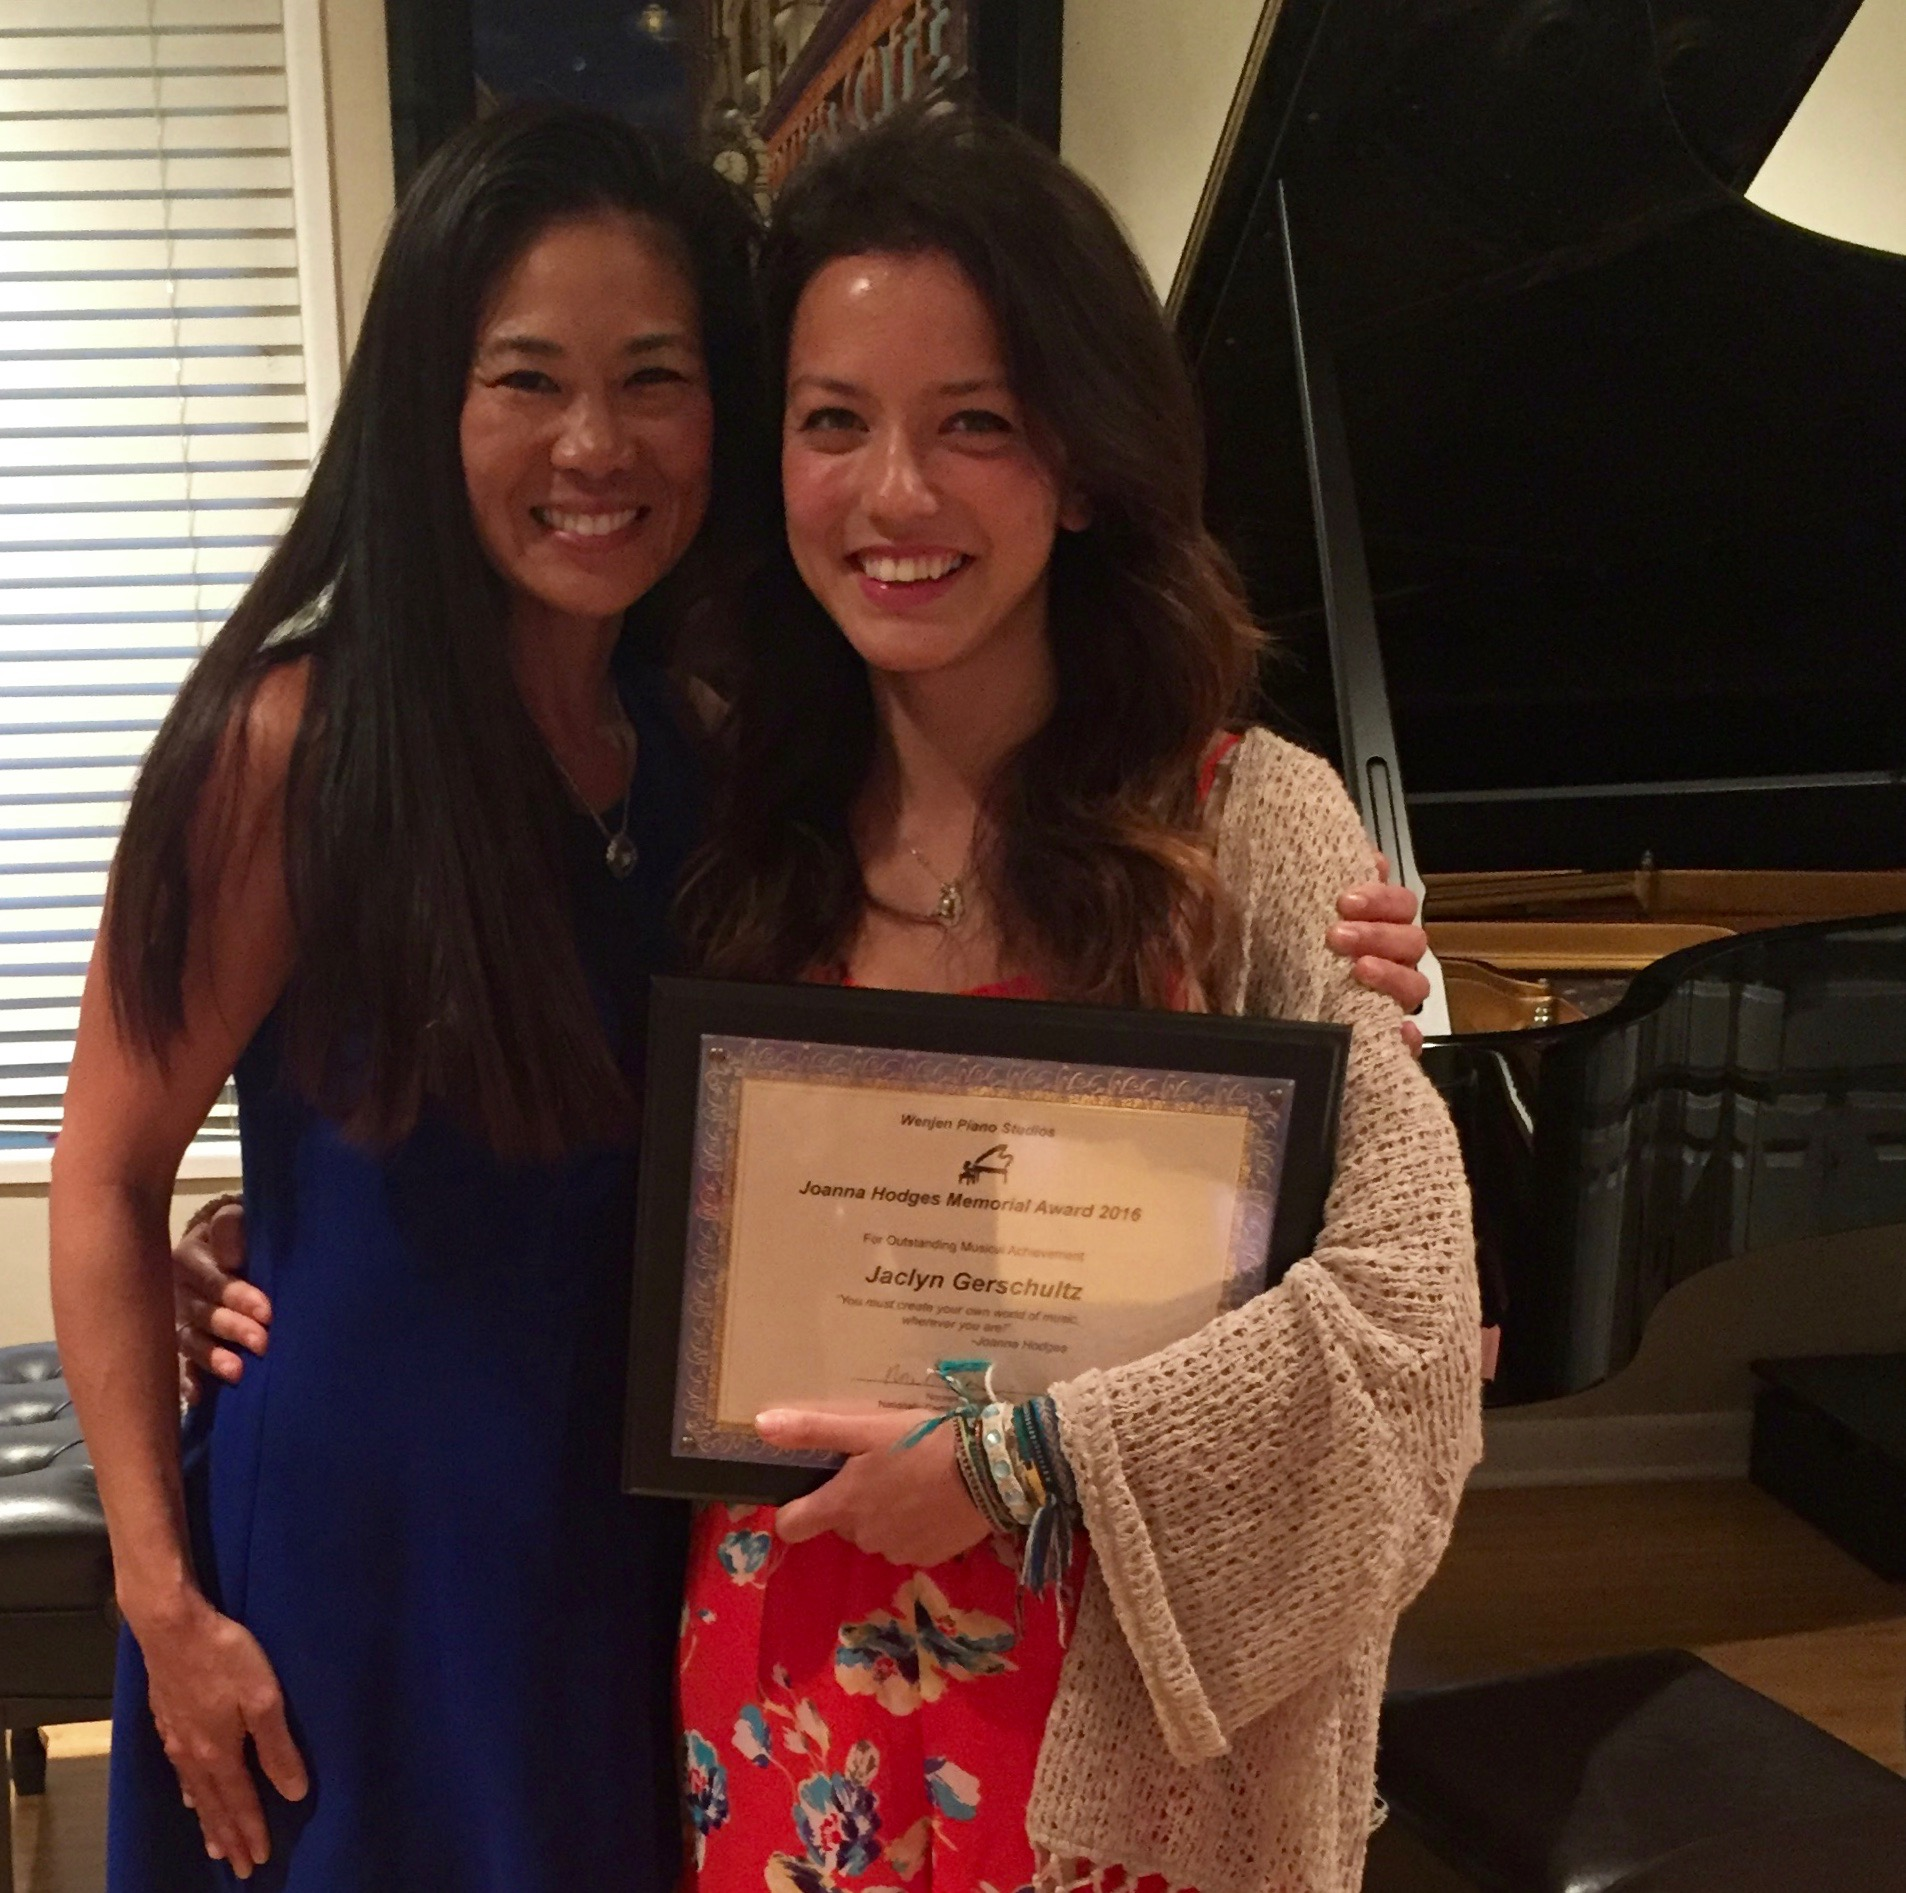 Jaclyn GErSCHULTz, winner of the Joanna Hodges Memorial Award 2016 and student for 14 years at Wenjen piano studios